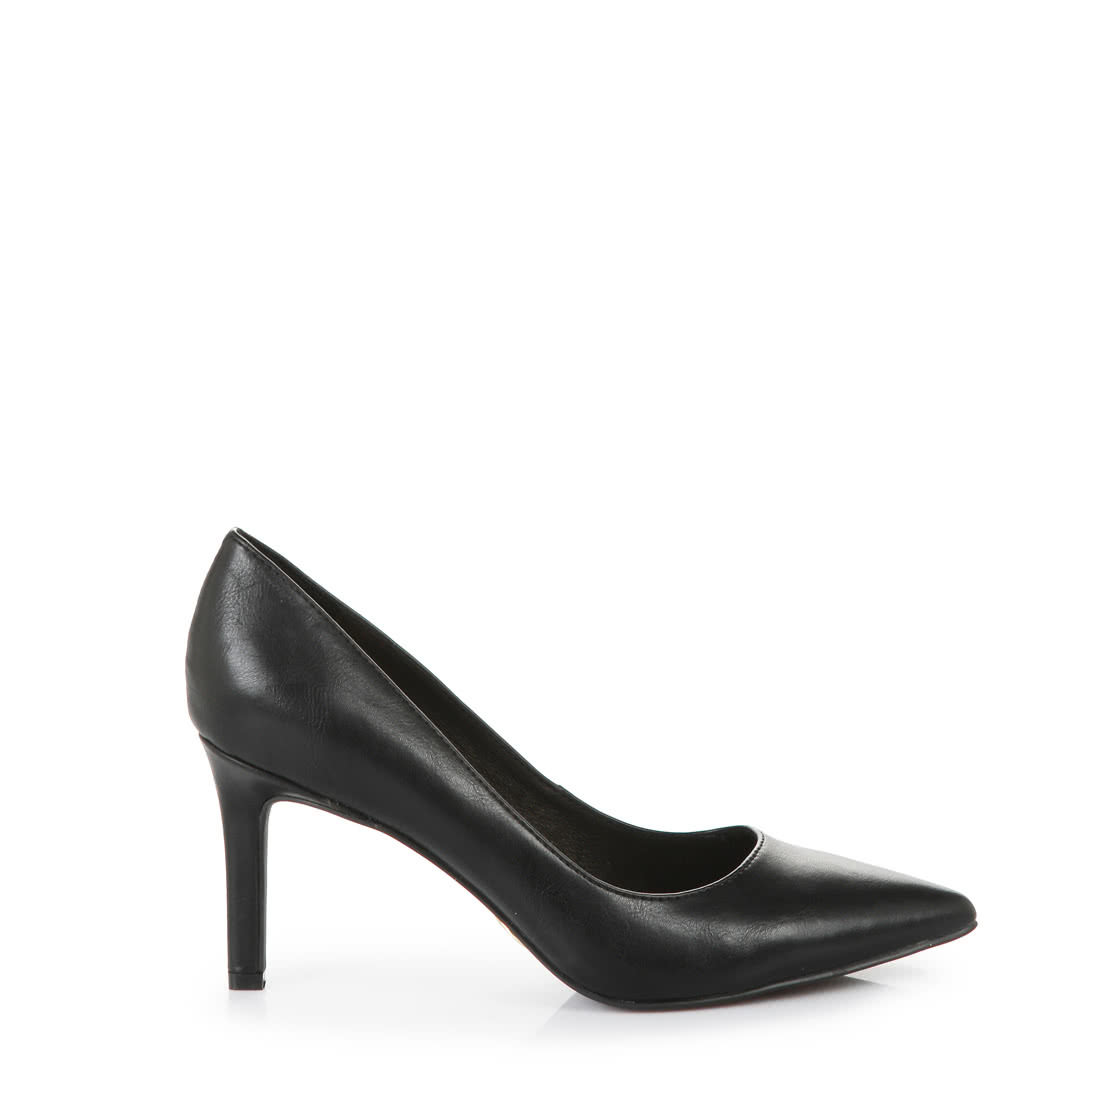 Buffalo pumps in black buy online in BUFFALO Online Shop